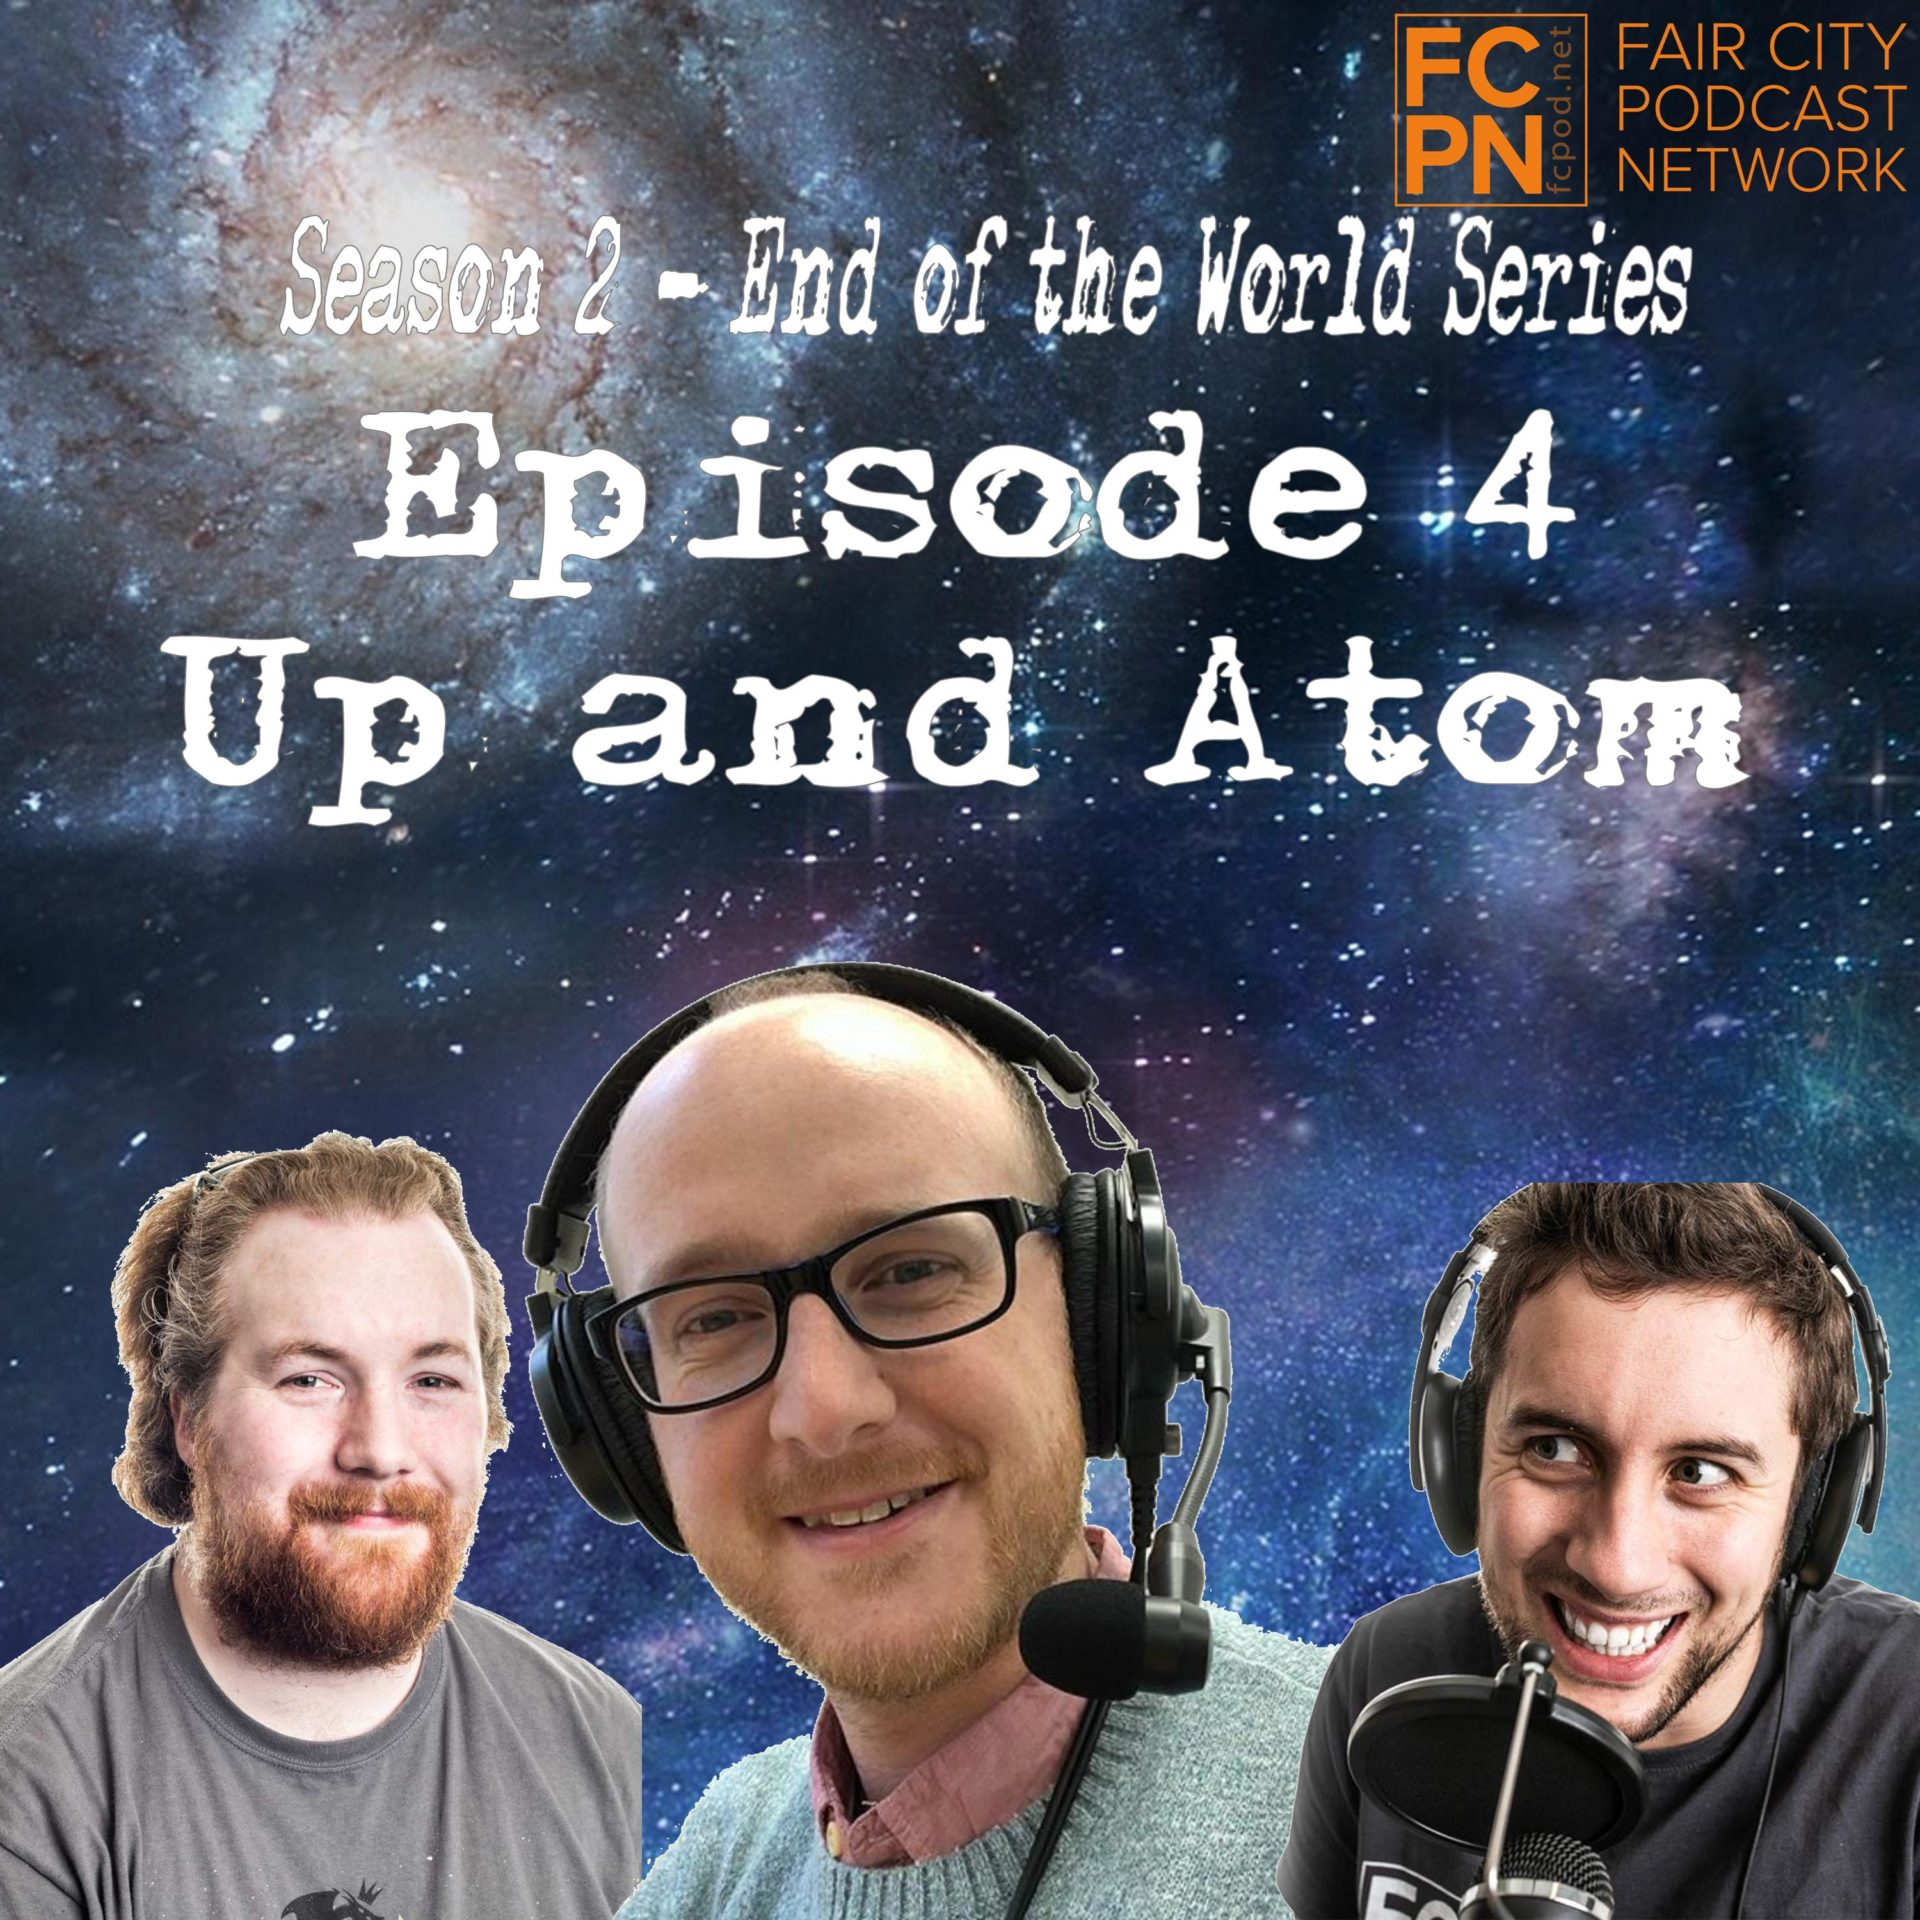 Season 2 Episode 4 – Up and Atom